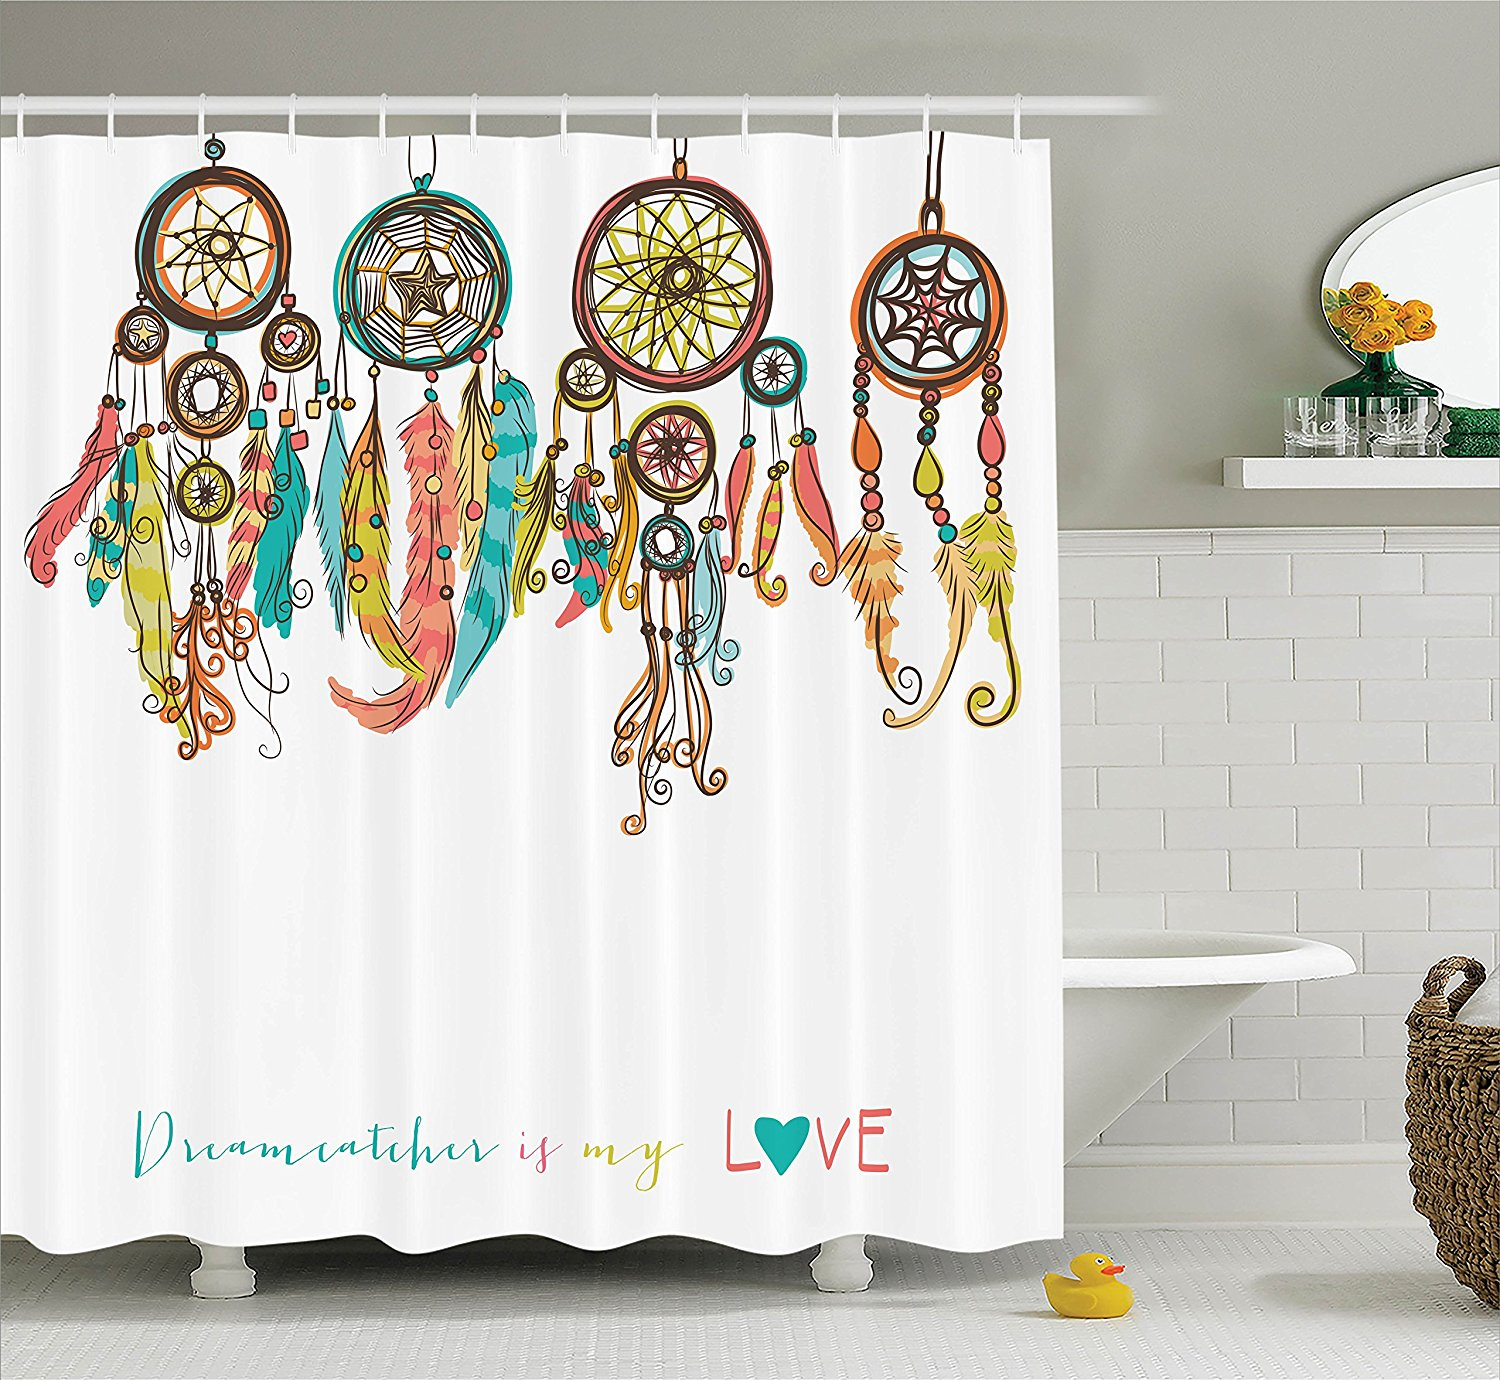 Aliexpress Buy Native American Shower Curtain Colorful Ethnic Dreamcatchers Tribal Design Elements Print Fabric Bathroom Set From